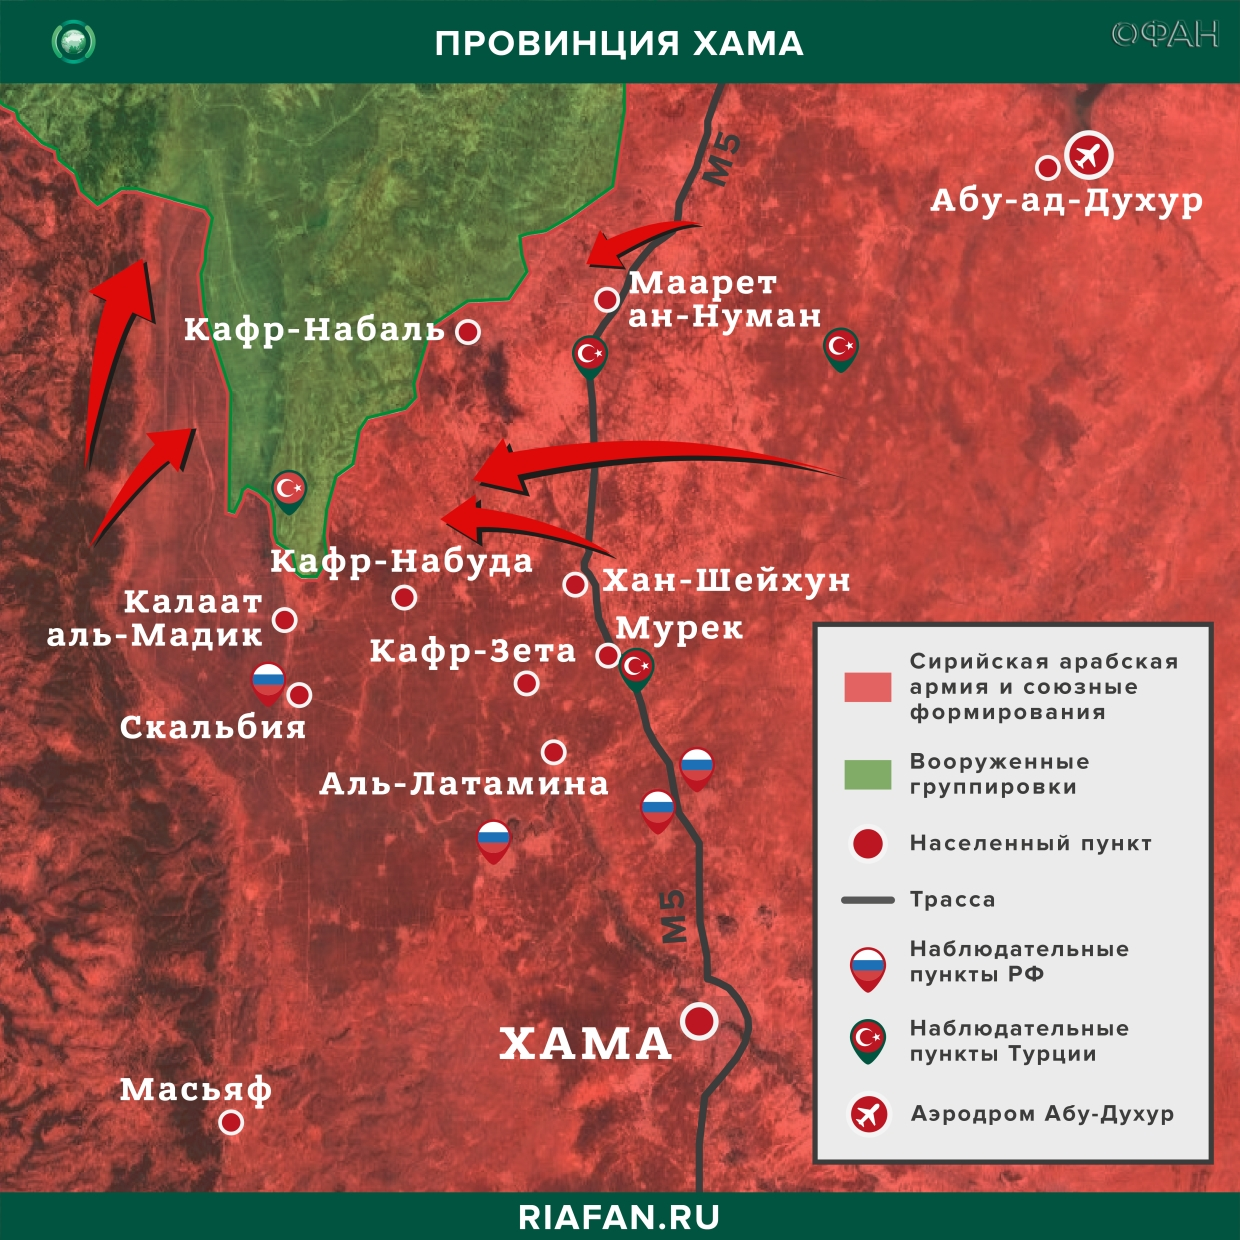 Syria the results of the day on 27 February 06.00: explosion in Damascus, Syrian army liberated more than 30 settlements Idlib